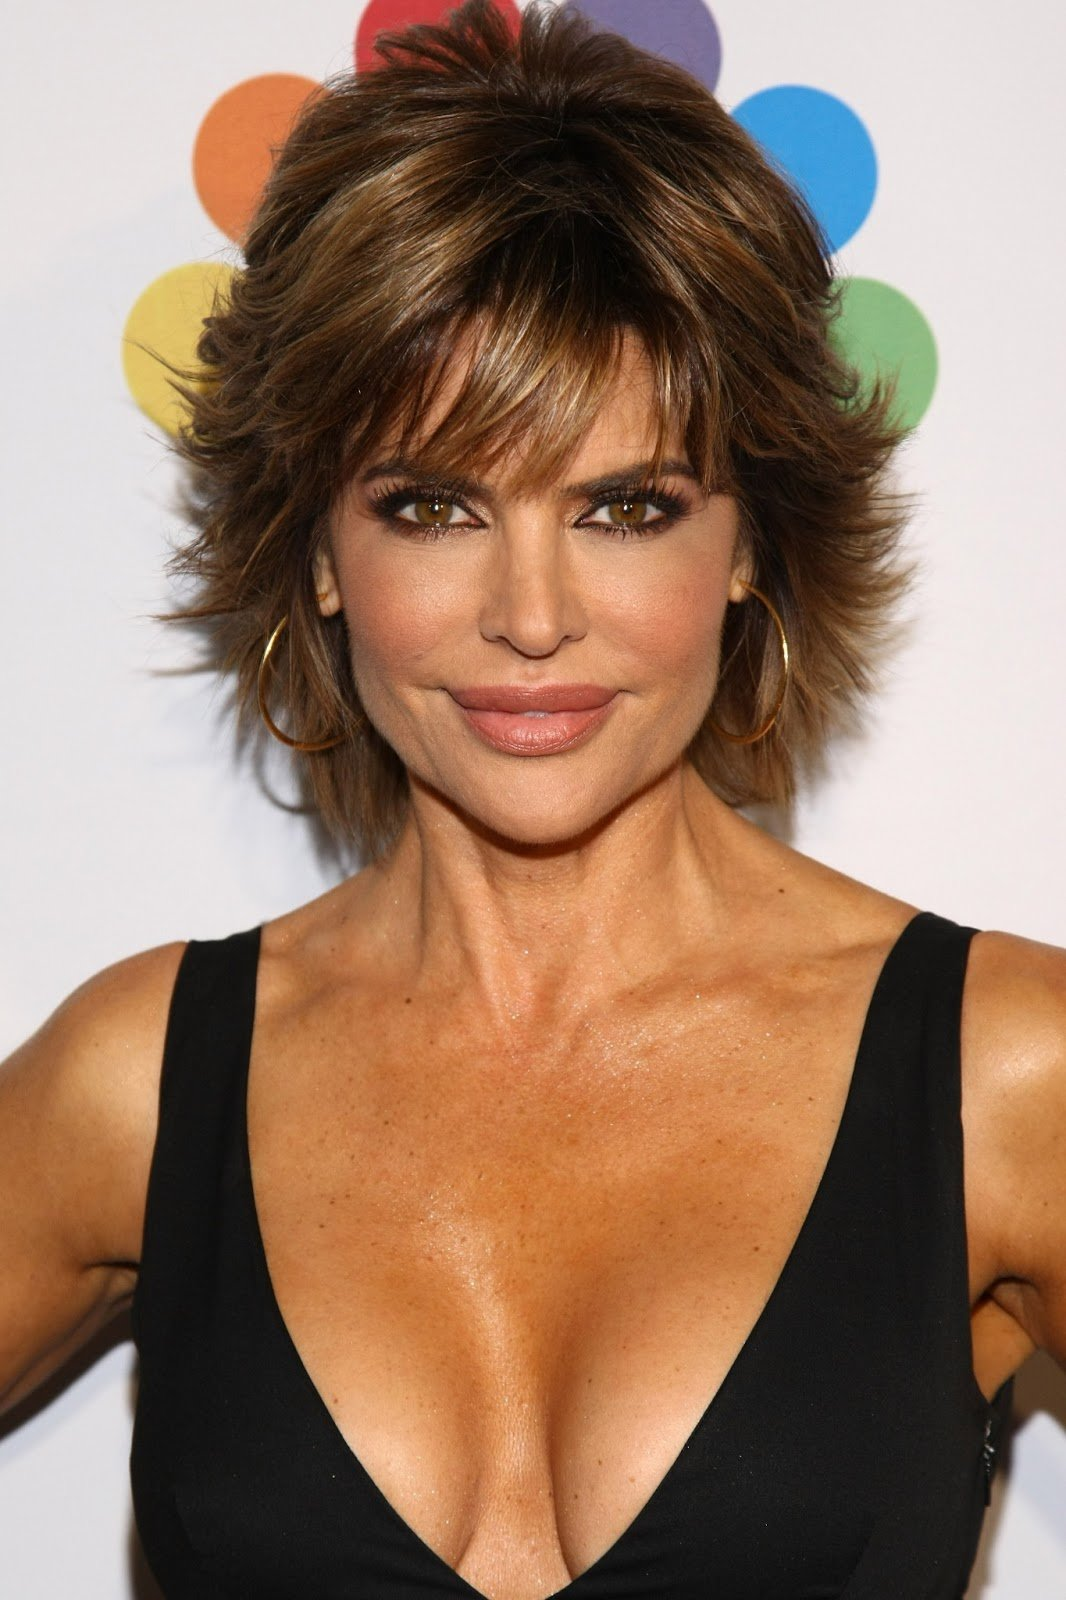 The Best Celebrity Hairstyle Haircut Ideas Lisa Rinna Short Pictures